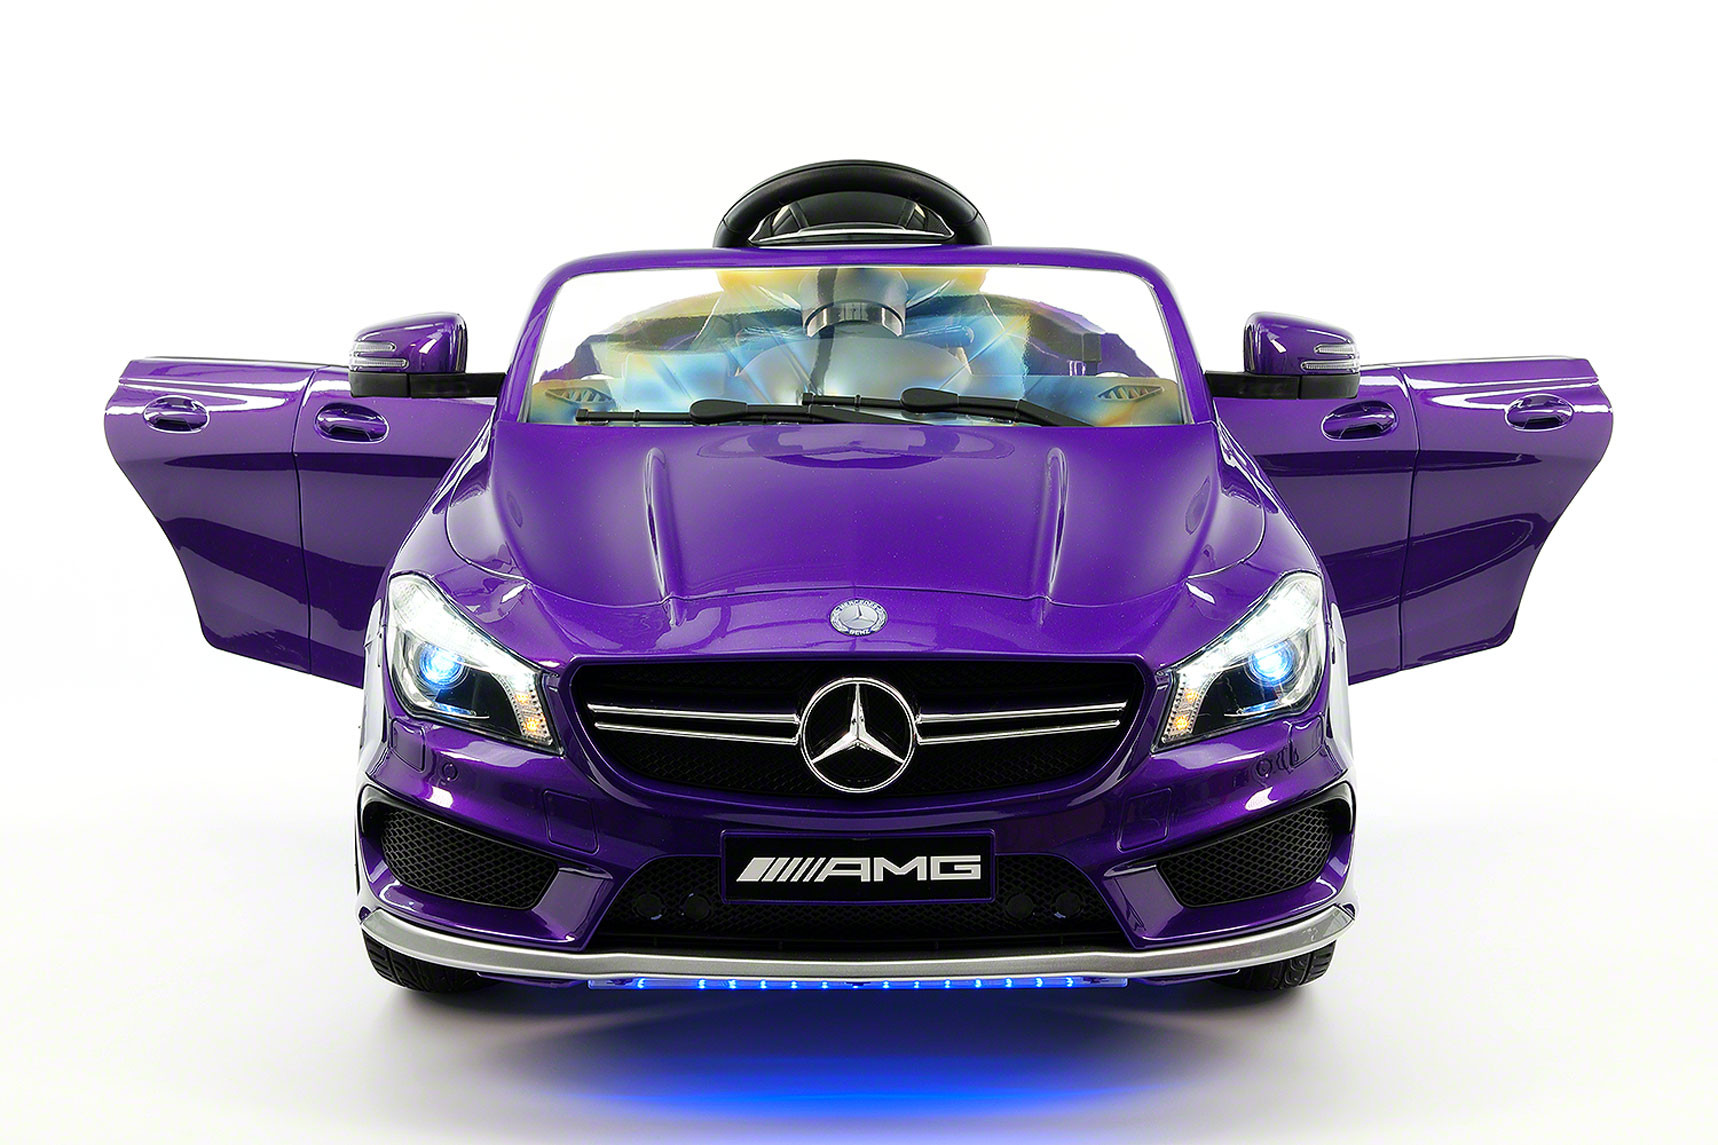 Mercedes CLA45 AMG 12V Kids Ride-On Car with Parental Remote   Purple Metallic by